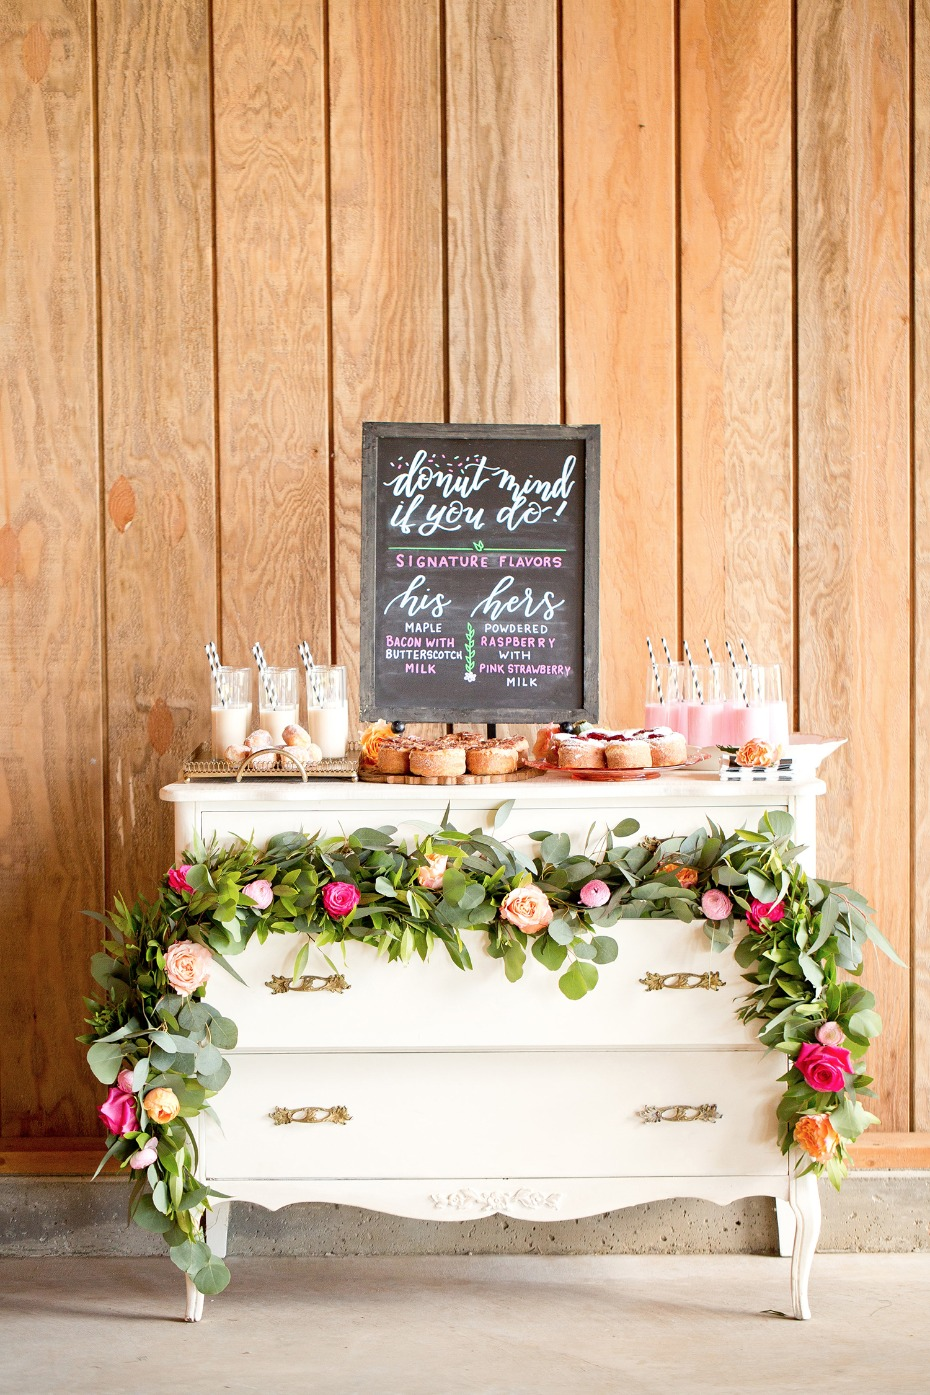 Donuts and milk dessert table